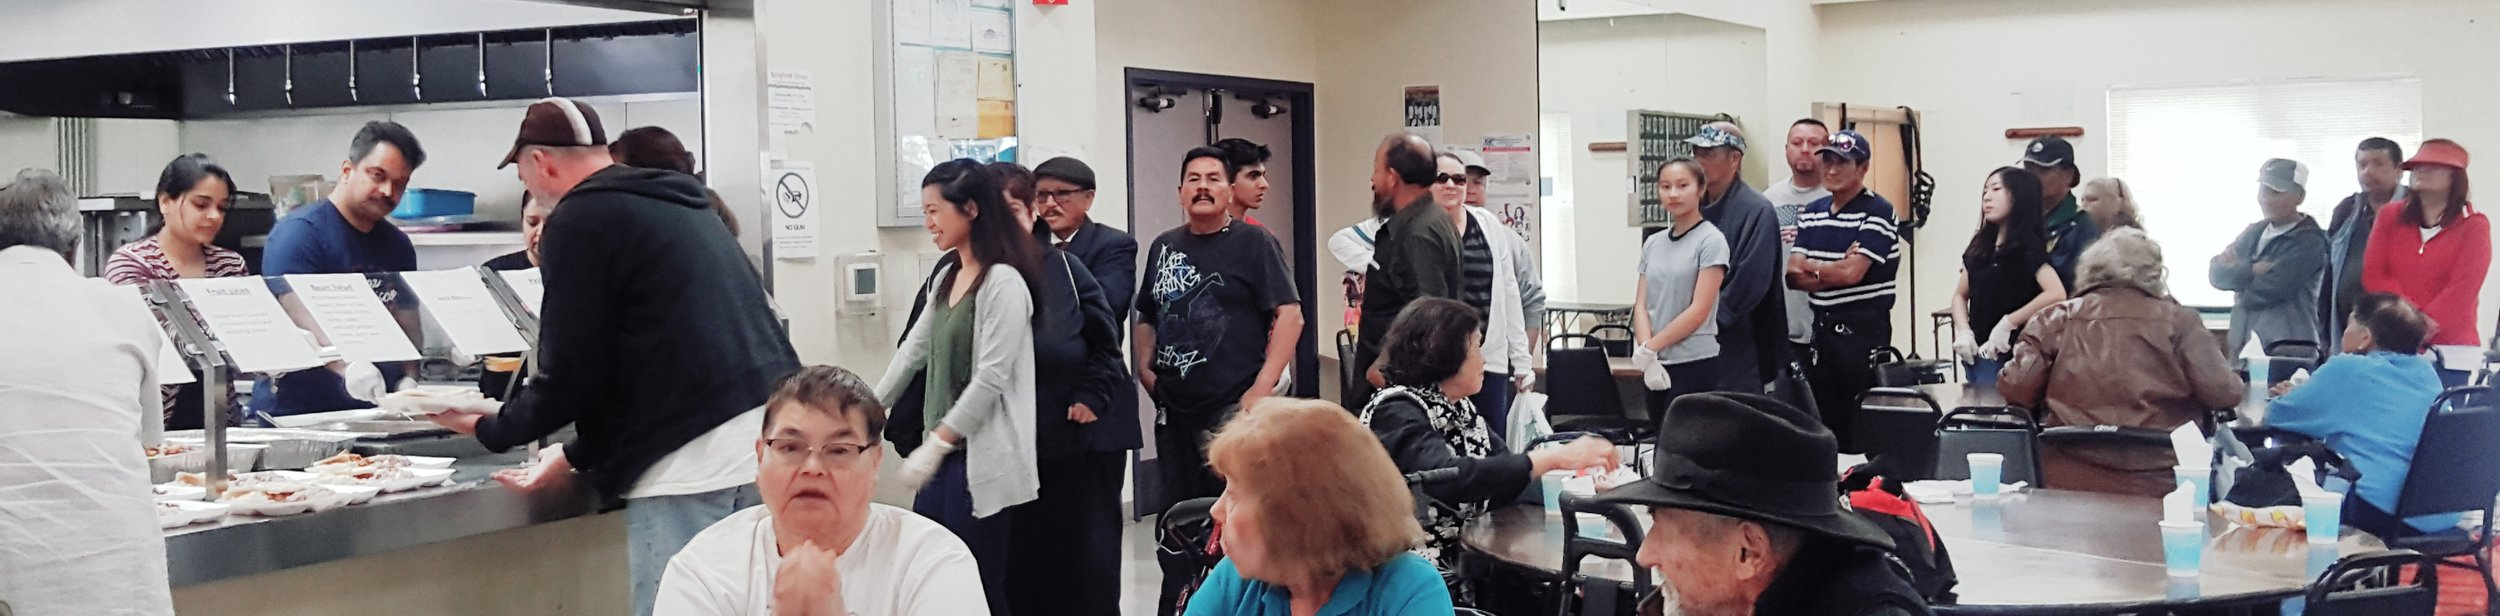 Photo courtesy Anne Santos with Loaves & Fishes People line up for a free meal at Loaves & Fishes meal service site at the Eastside Neighborhood Center on Alum Rock Avenue.